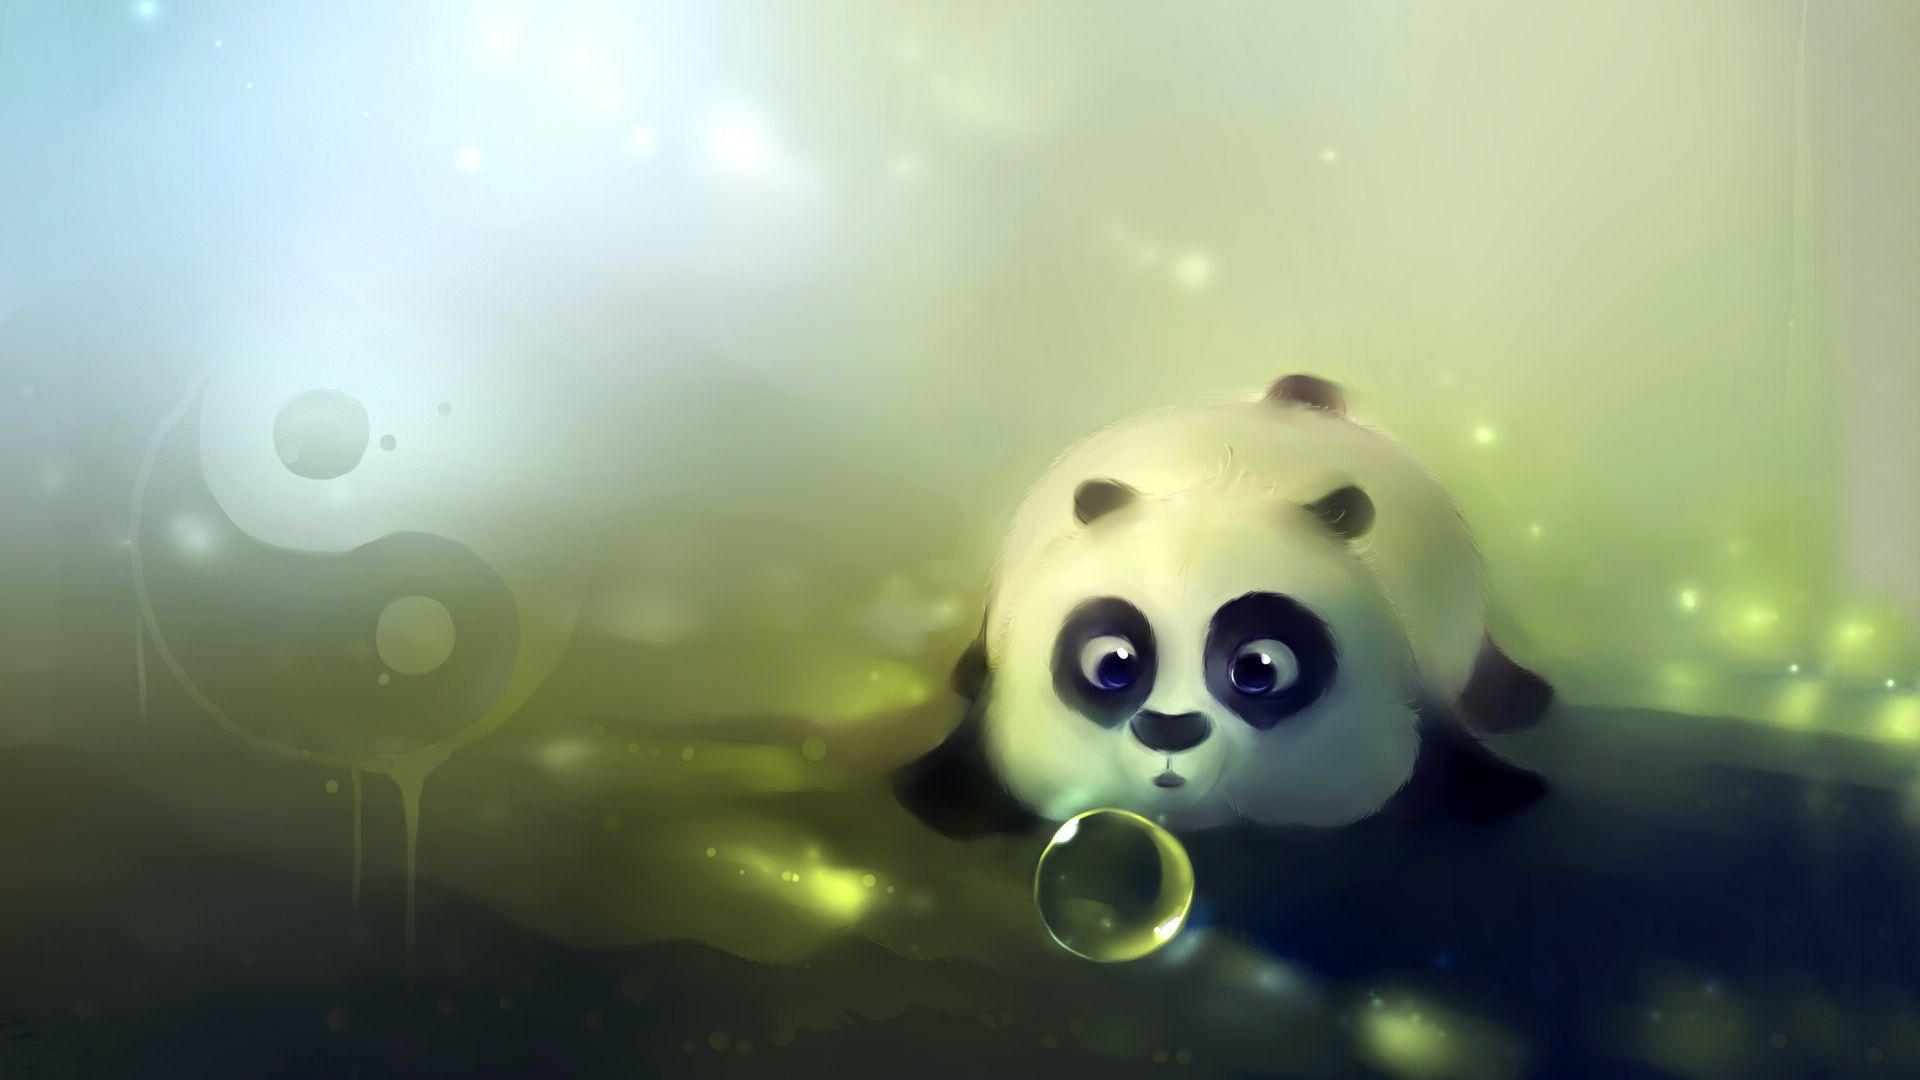 Cute Panda Backgrounds 1920x1080